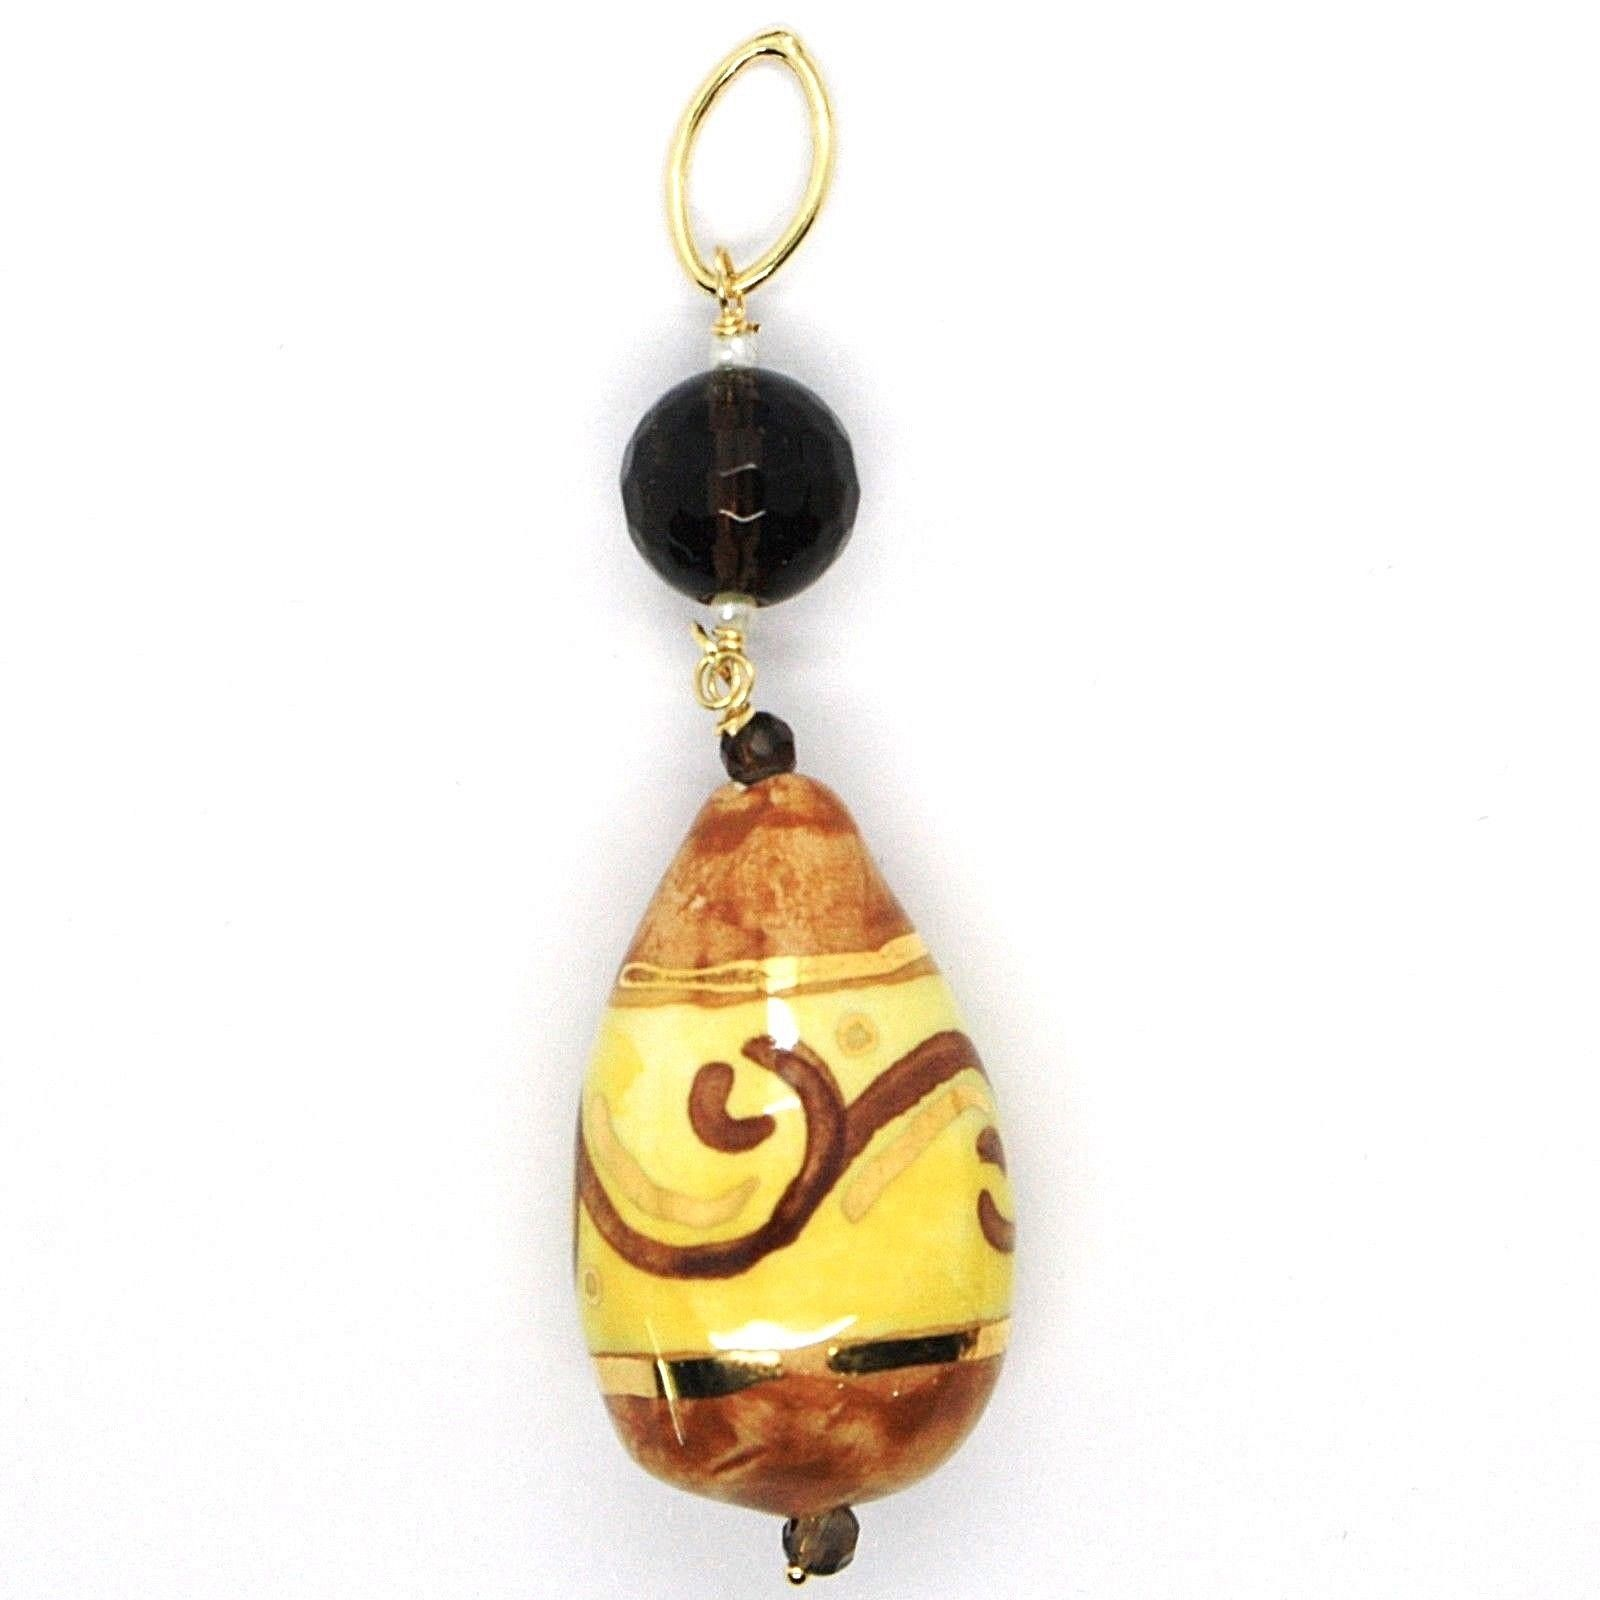 18K YELLOW GOLD PENDANT, SMOKY QUARTZ POTTERY CERAMIC DROP HAND PAINTED IN ITALY